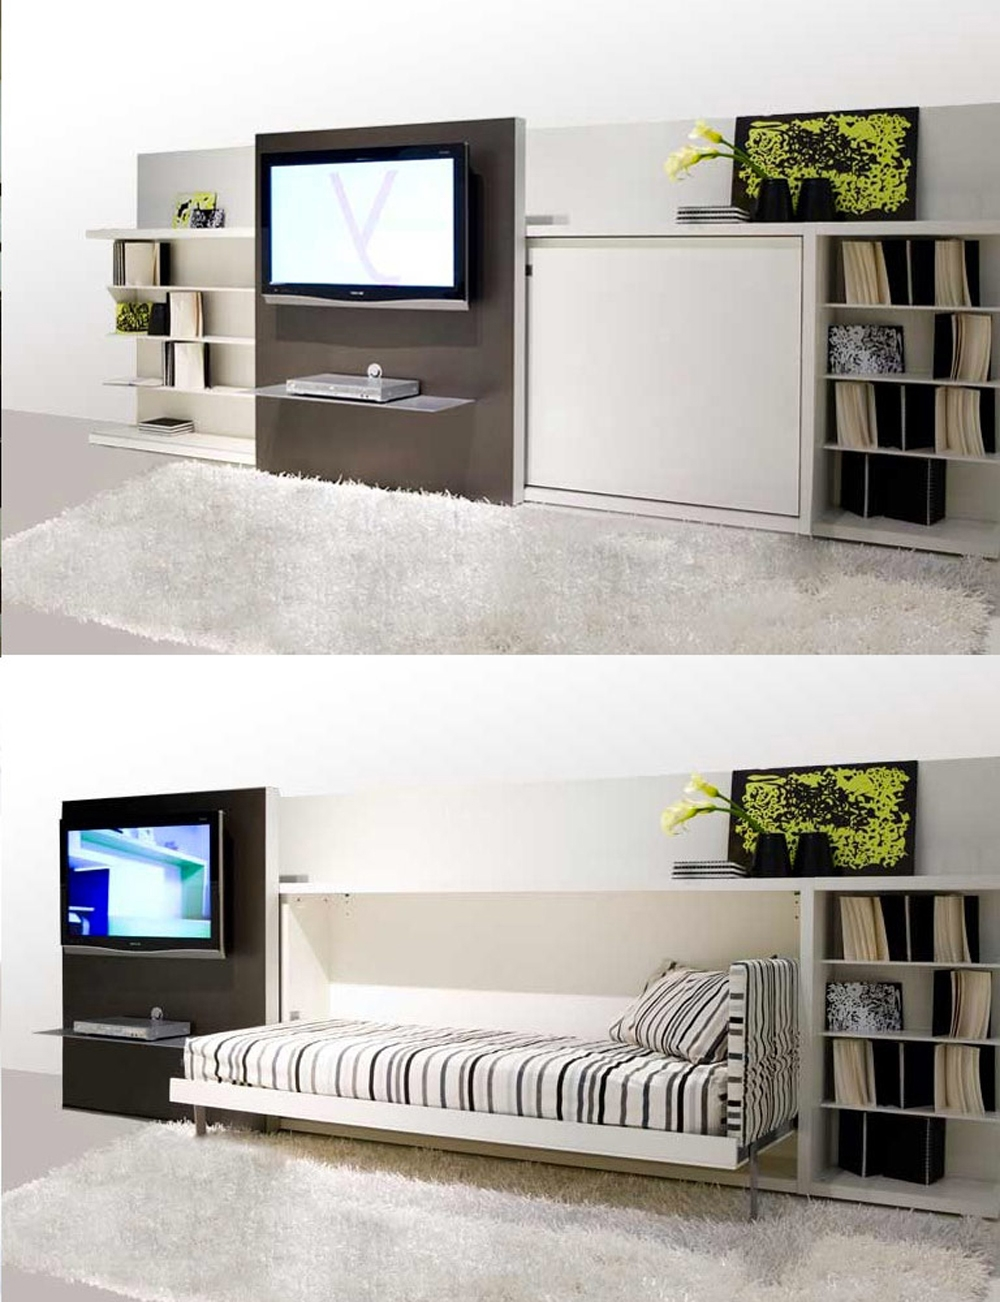 Bedroom Concealed Bed Design White Cabinet Bookcase Nightstand Inside Bookcase With Tv Space (View 2 of 15)